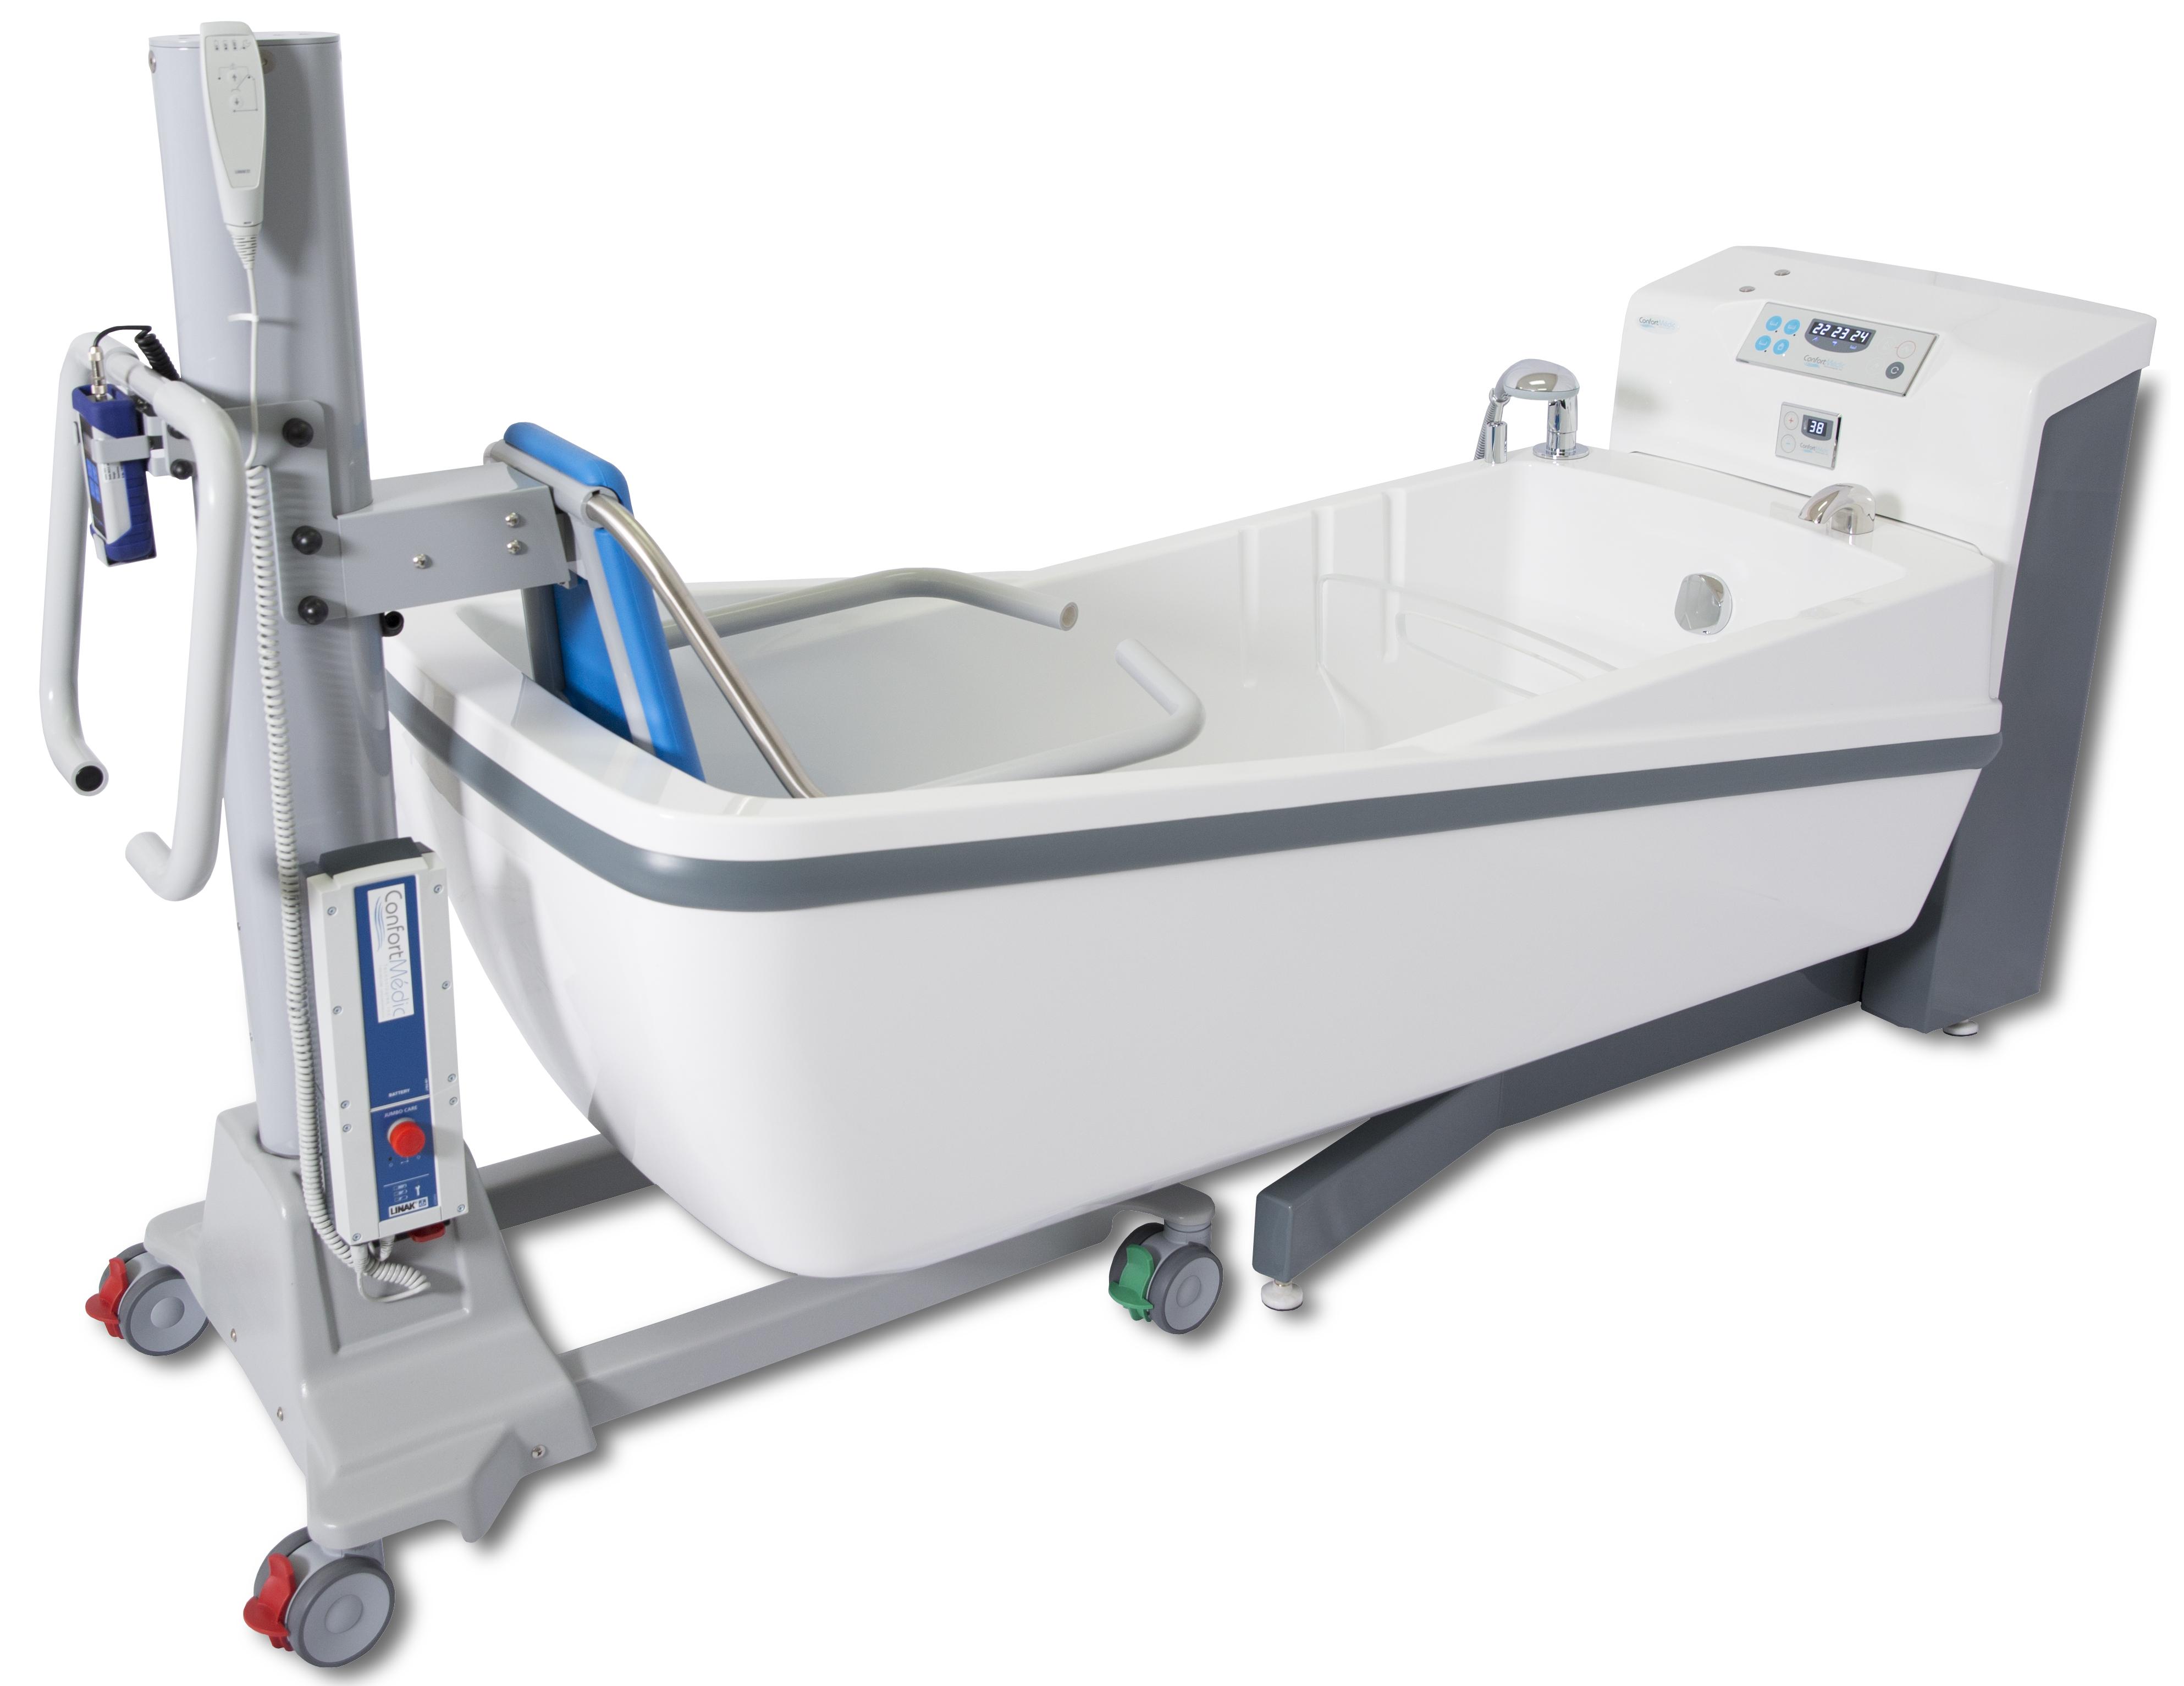 chinesport rehab trolley base ht single undefined and basic tilting showertrolley head h shower section l hygene bathroom with